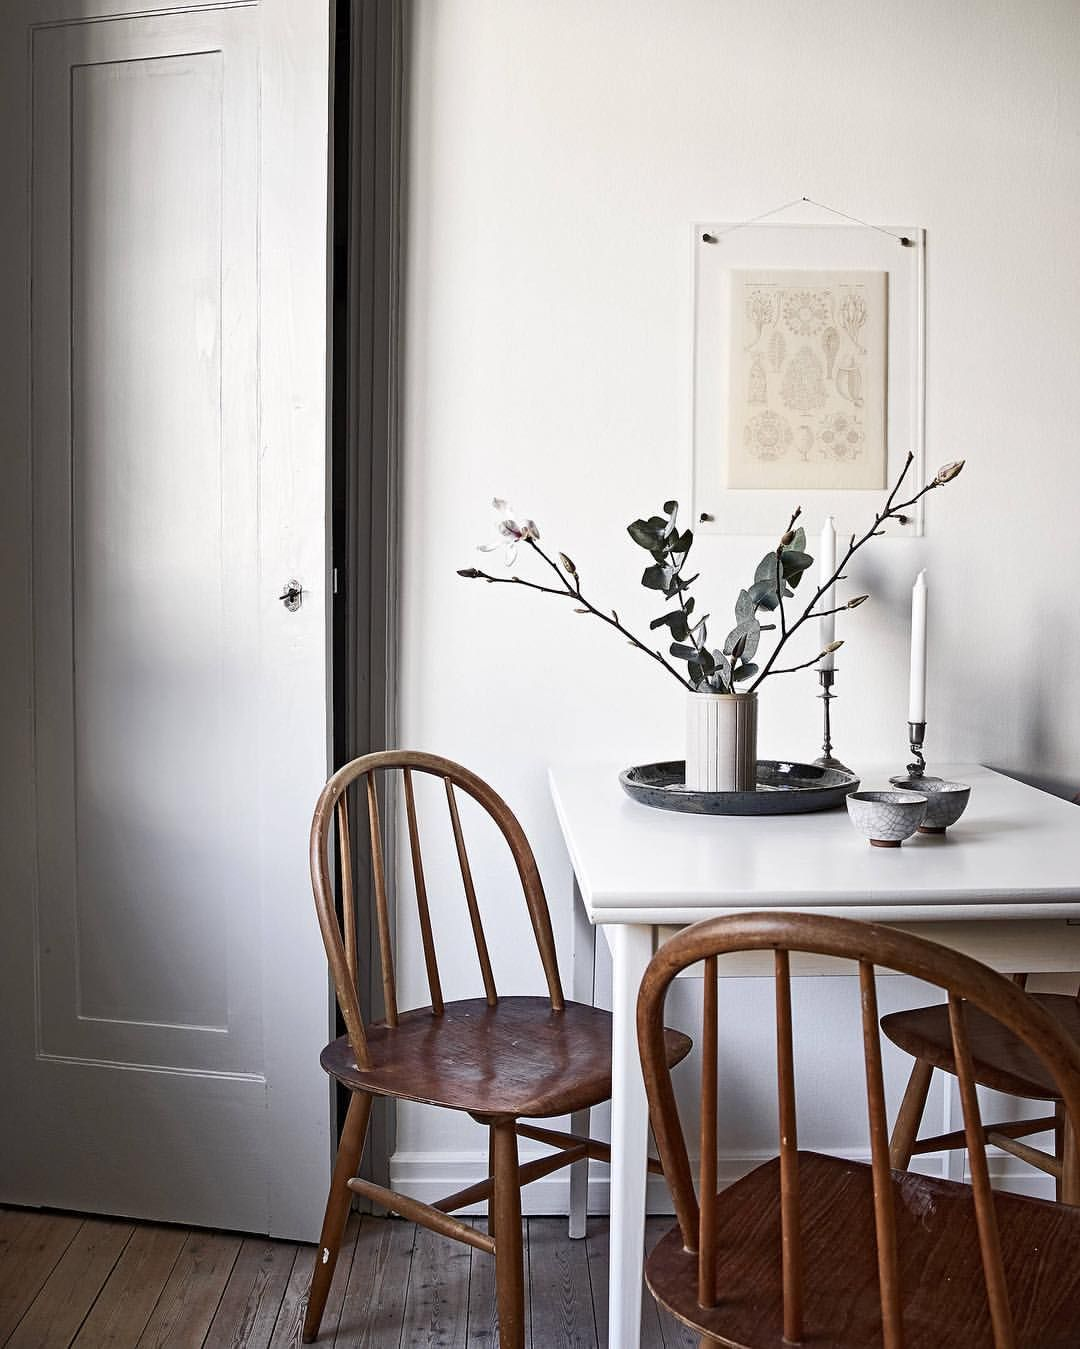 Amazing Calm And Peaceful Dining Spot With White Table And Old Wooden Chairs In  White Dining Room